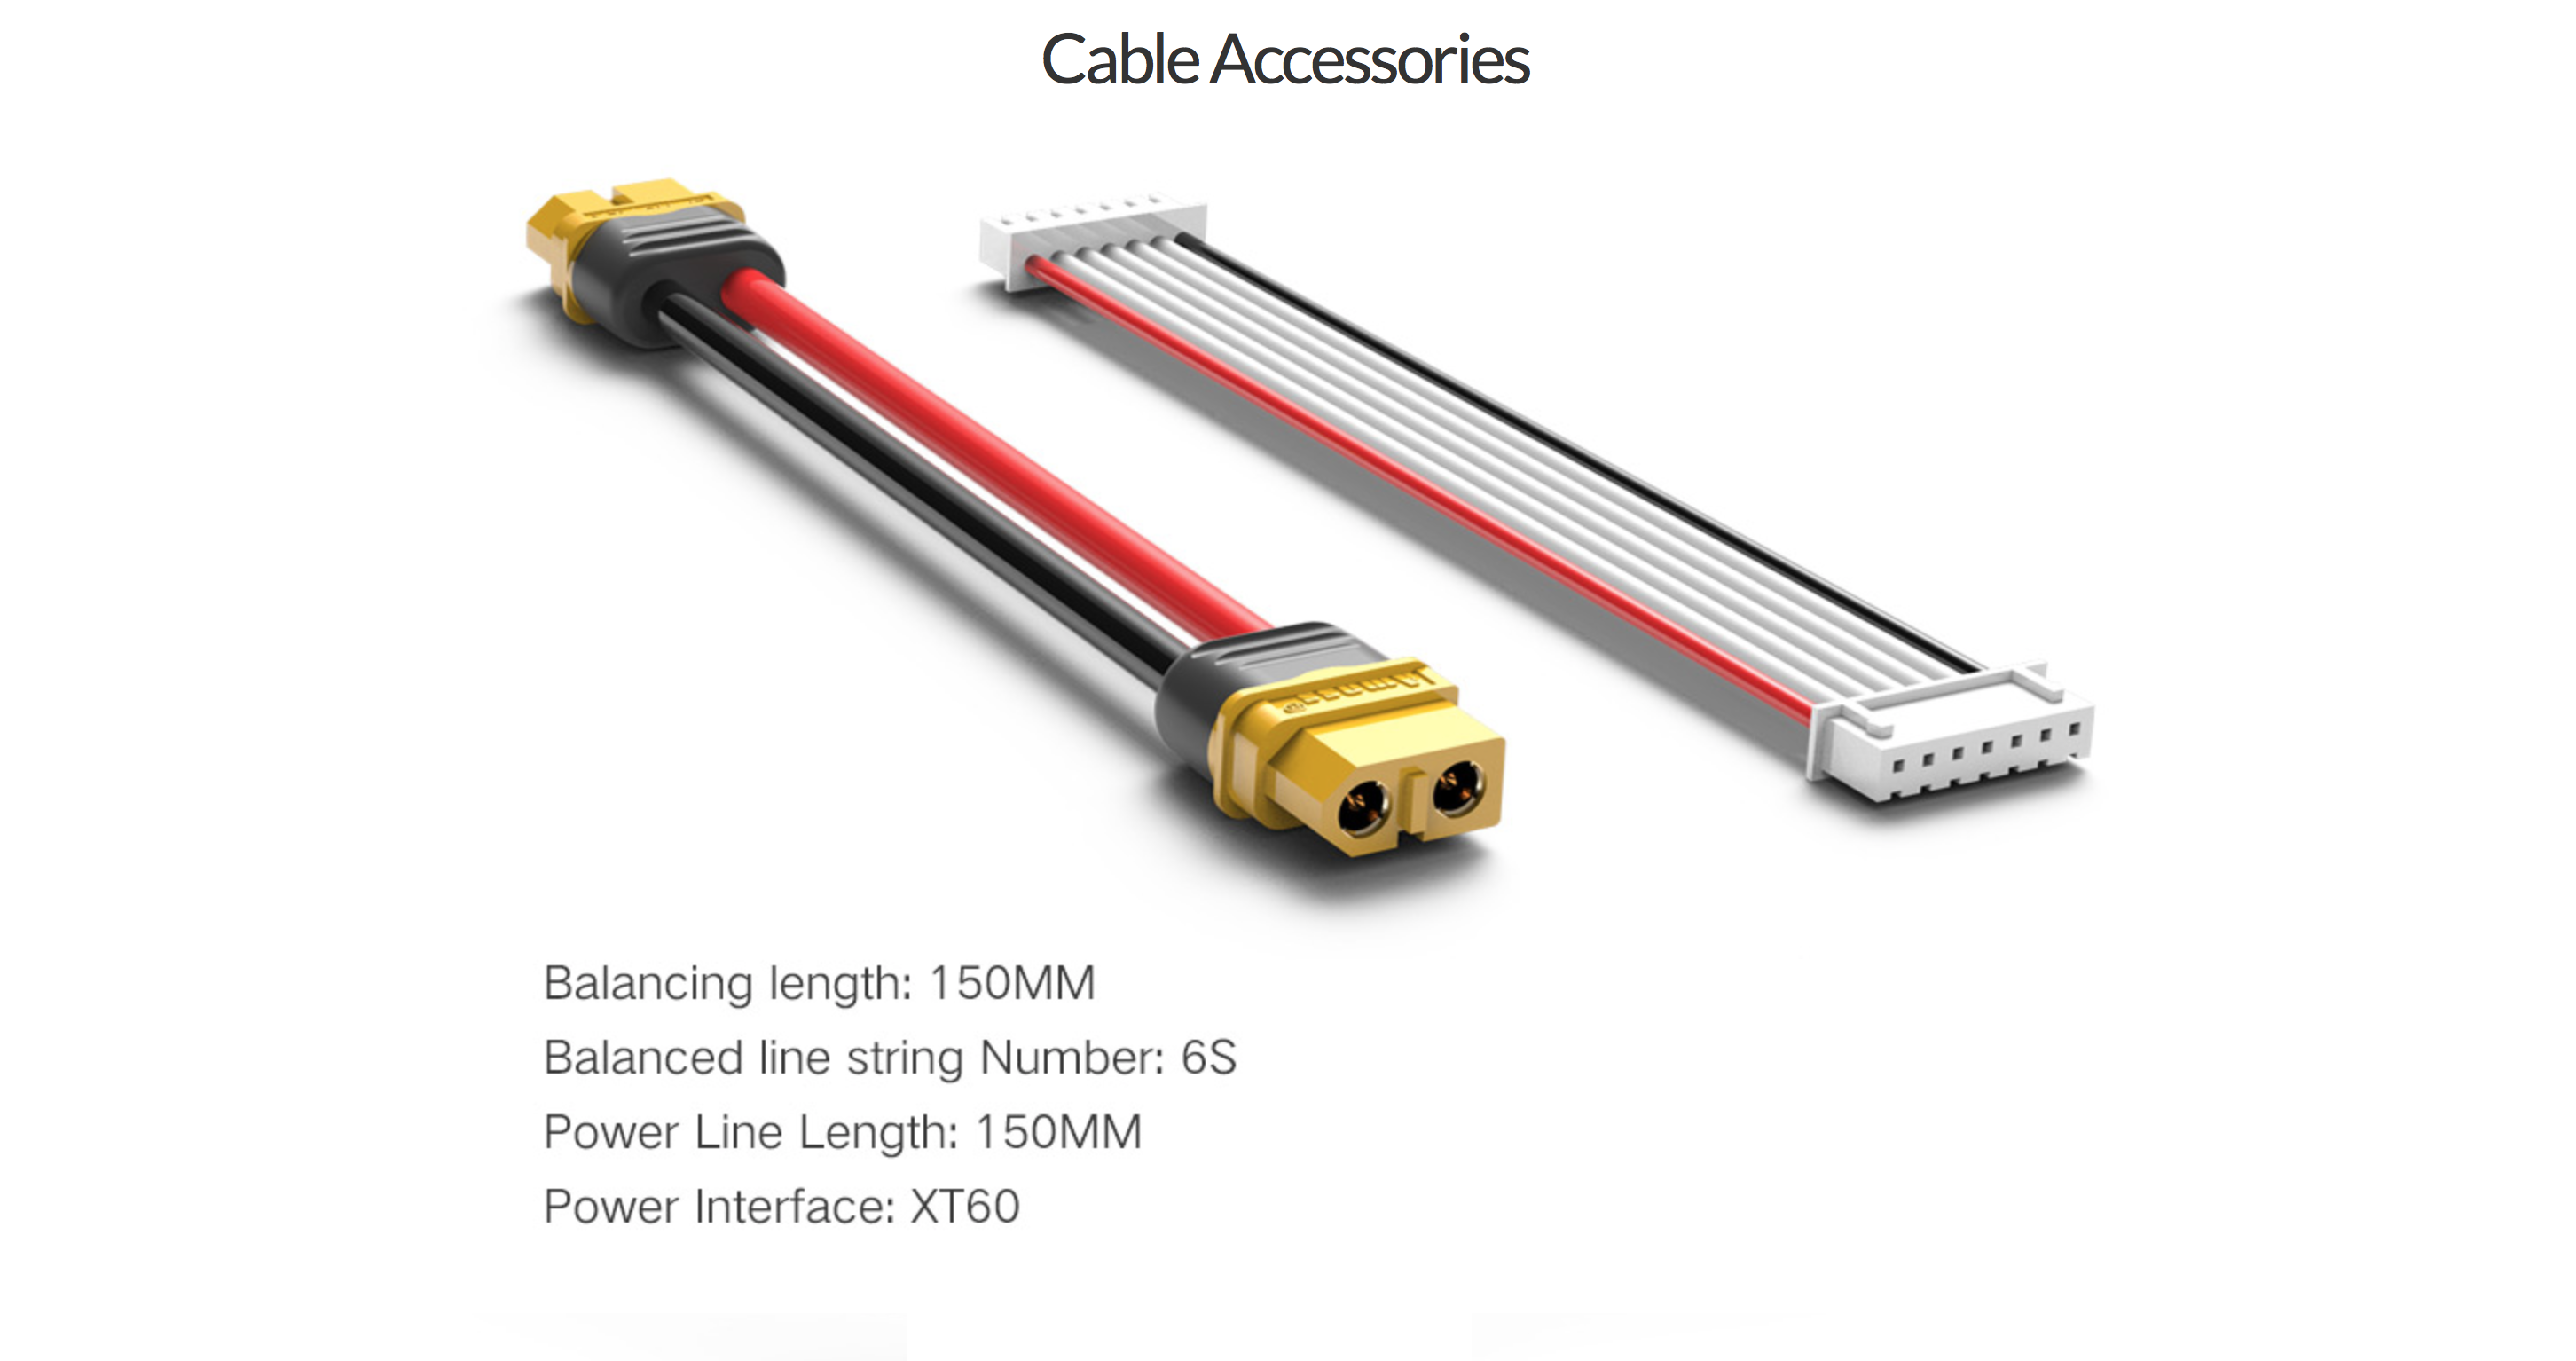 ISDT PC-4860 Cables